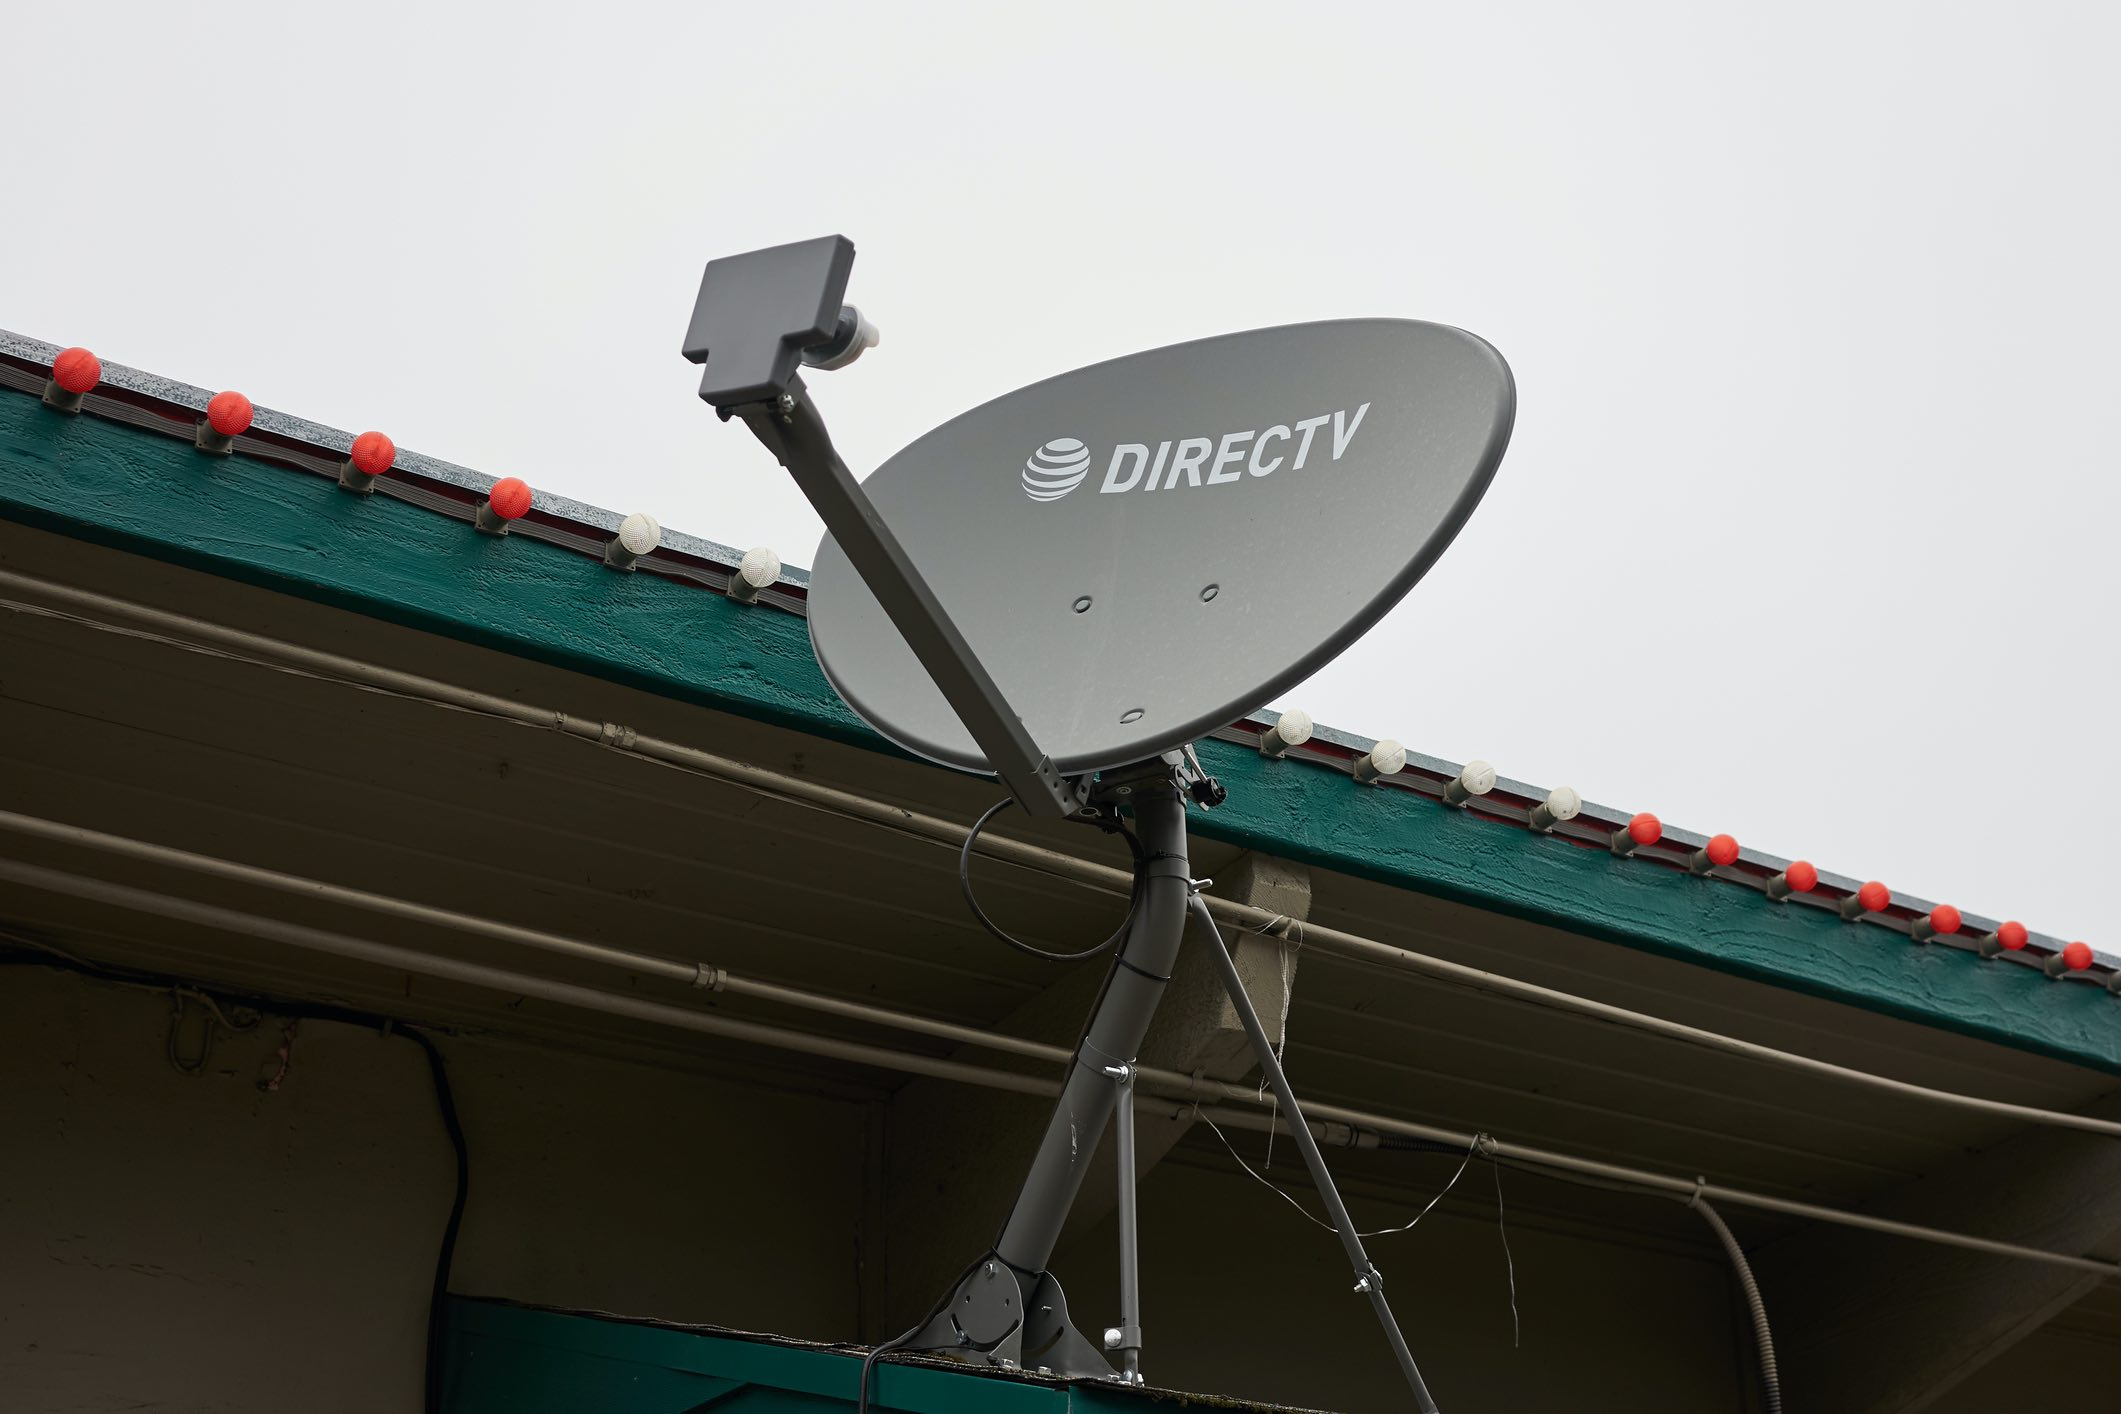 At T May Keep Majority Ownership Of Directv As It Closes In On Final Deal Ars Technica Direct tv satellite installation technician salary